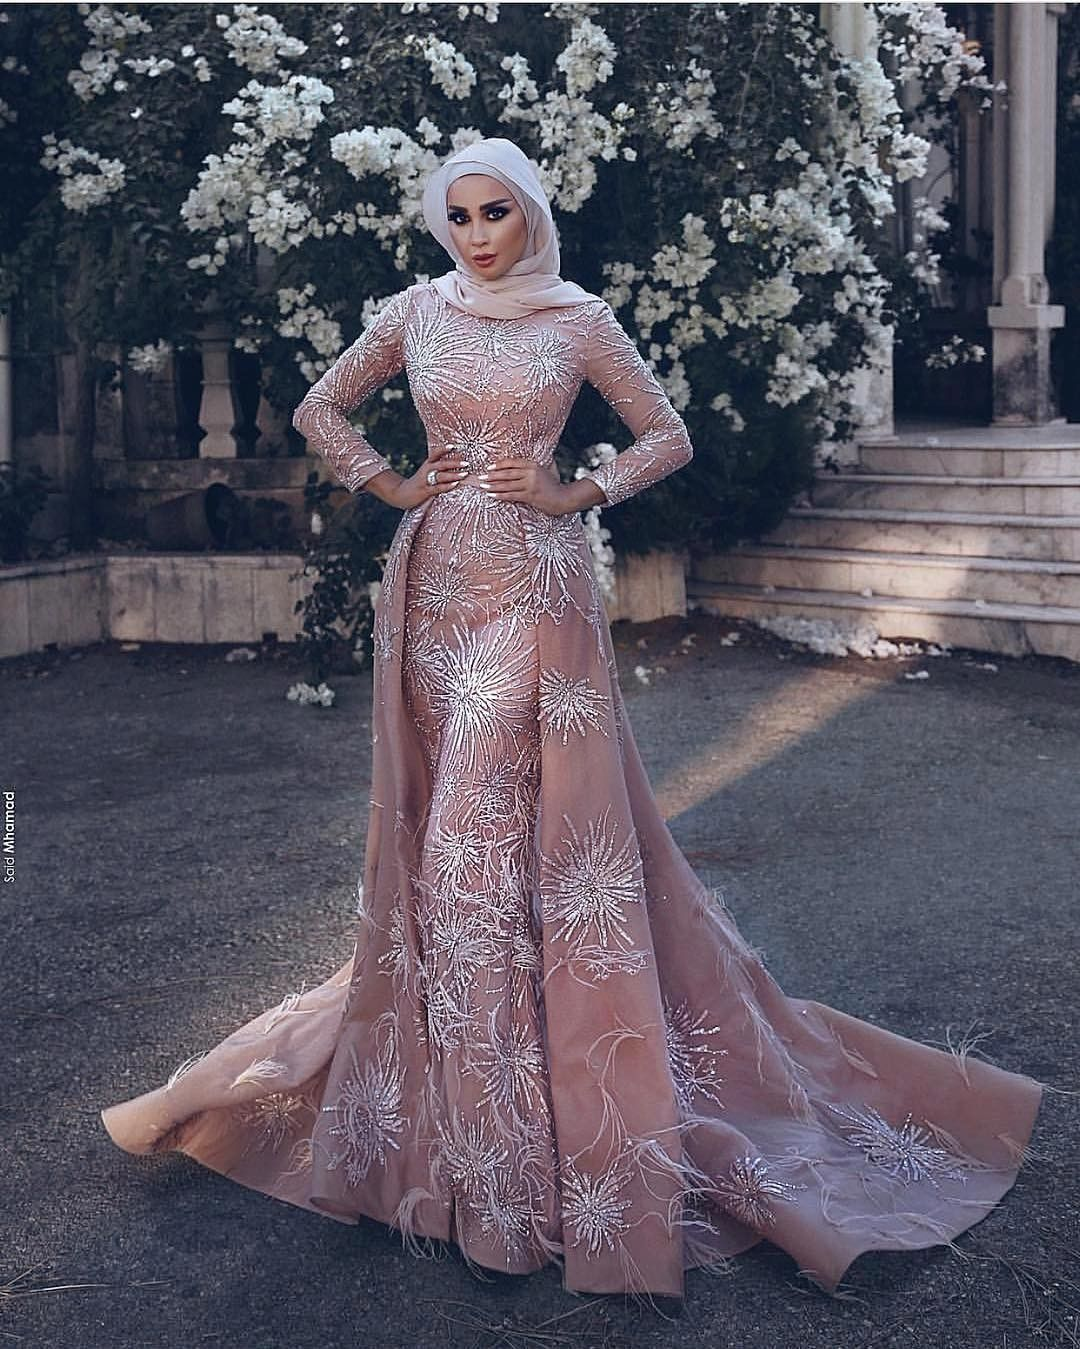 Pin by ceci medina on blusas pinterest muslim gown prom and